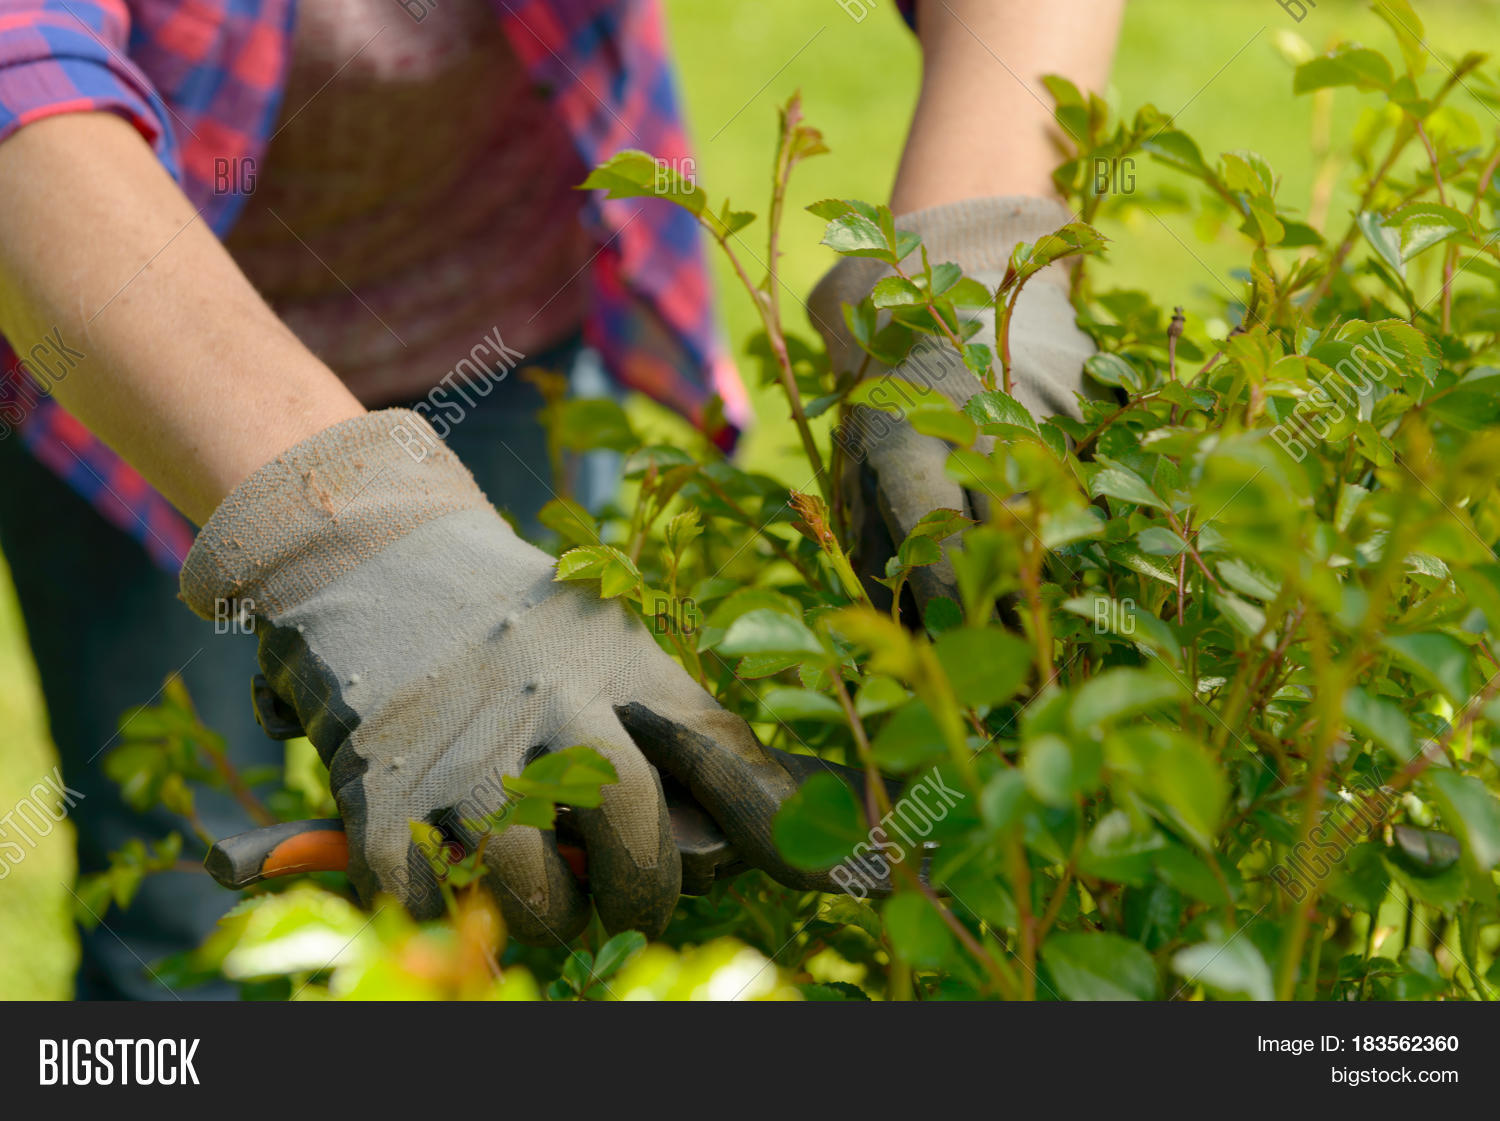 Hands woman gardening her beautiful image photo bigstock for Big hands for gardening